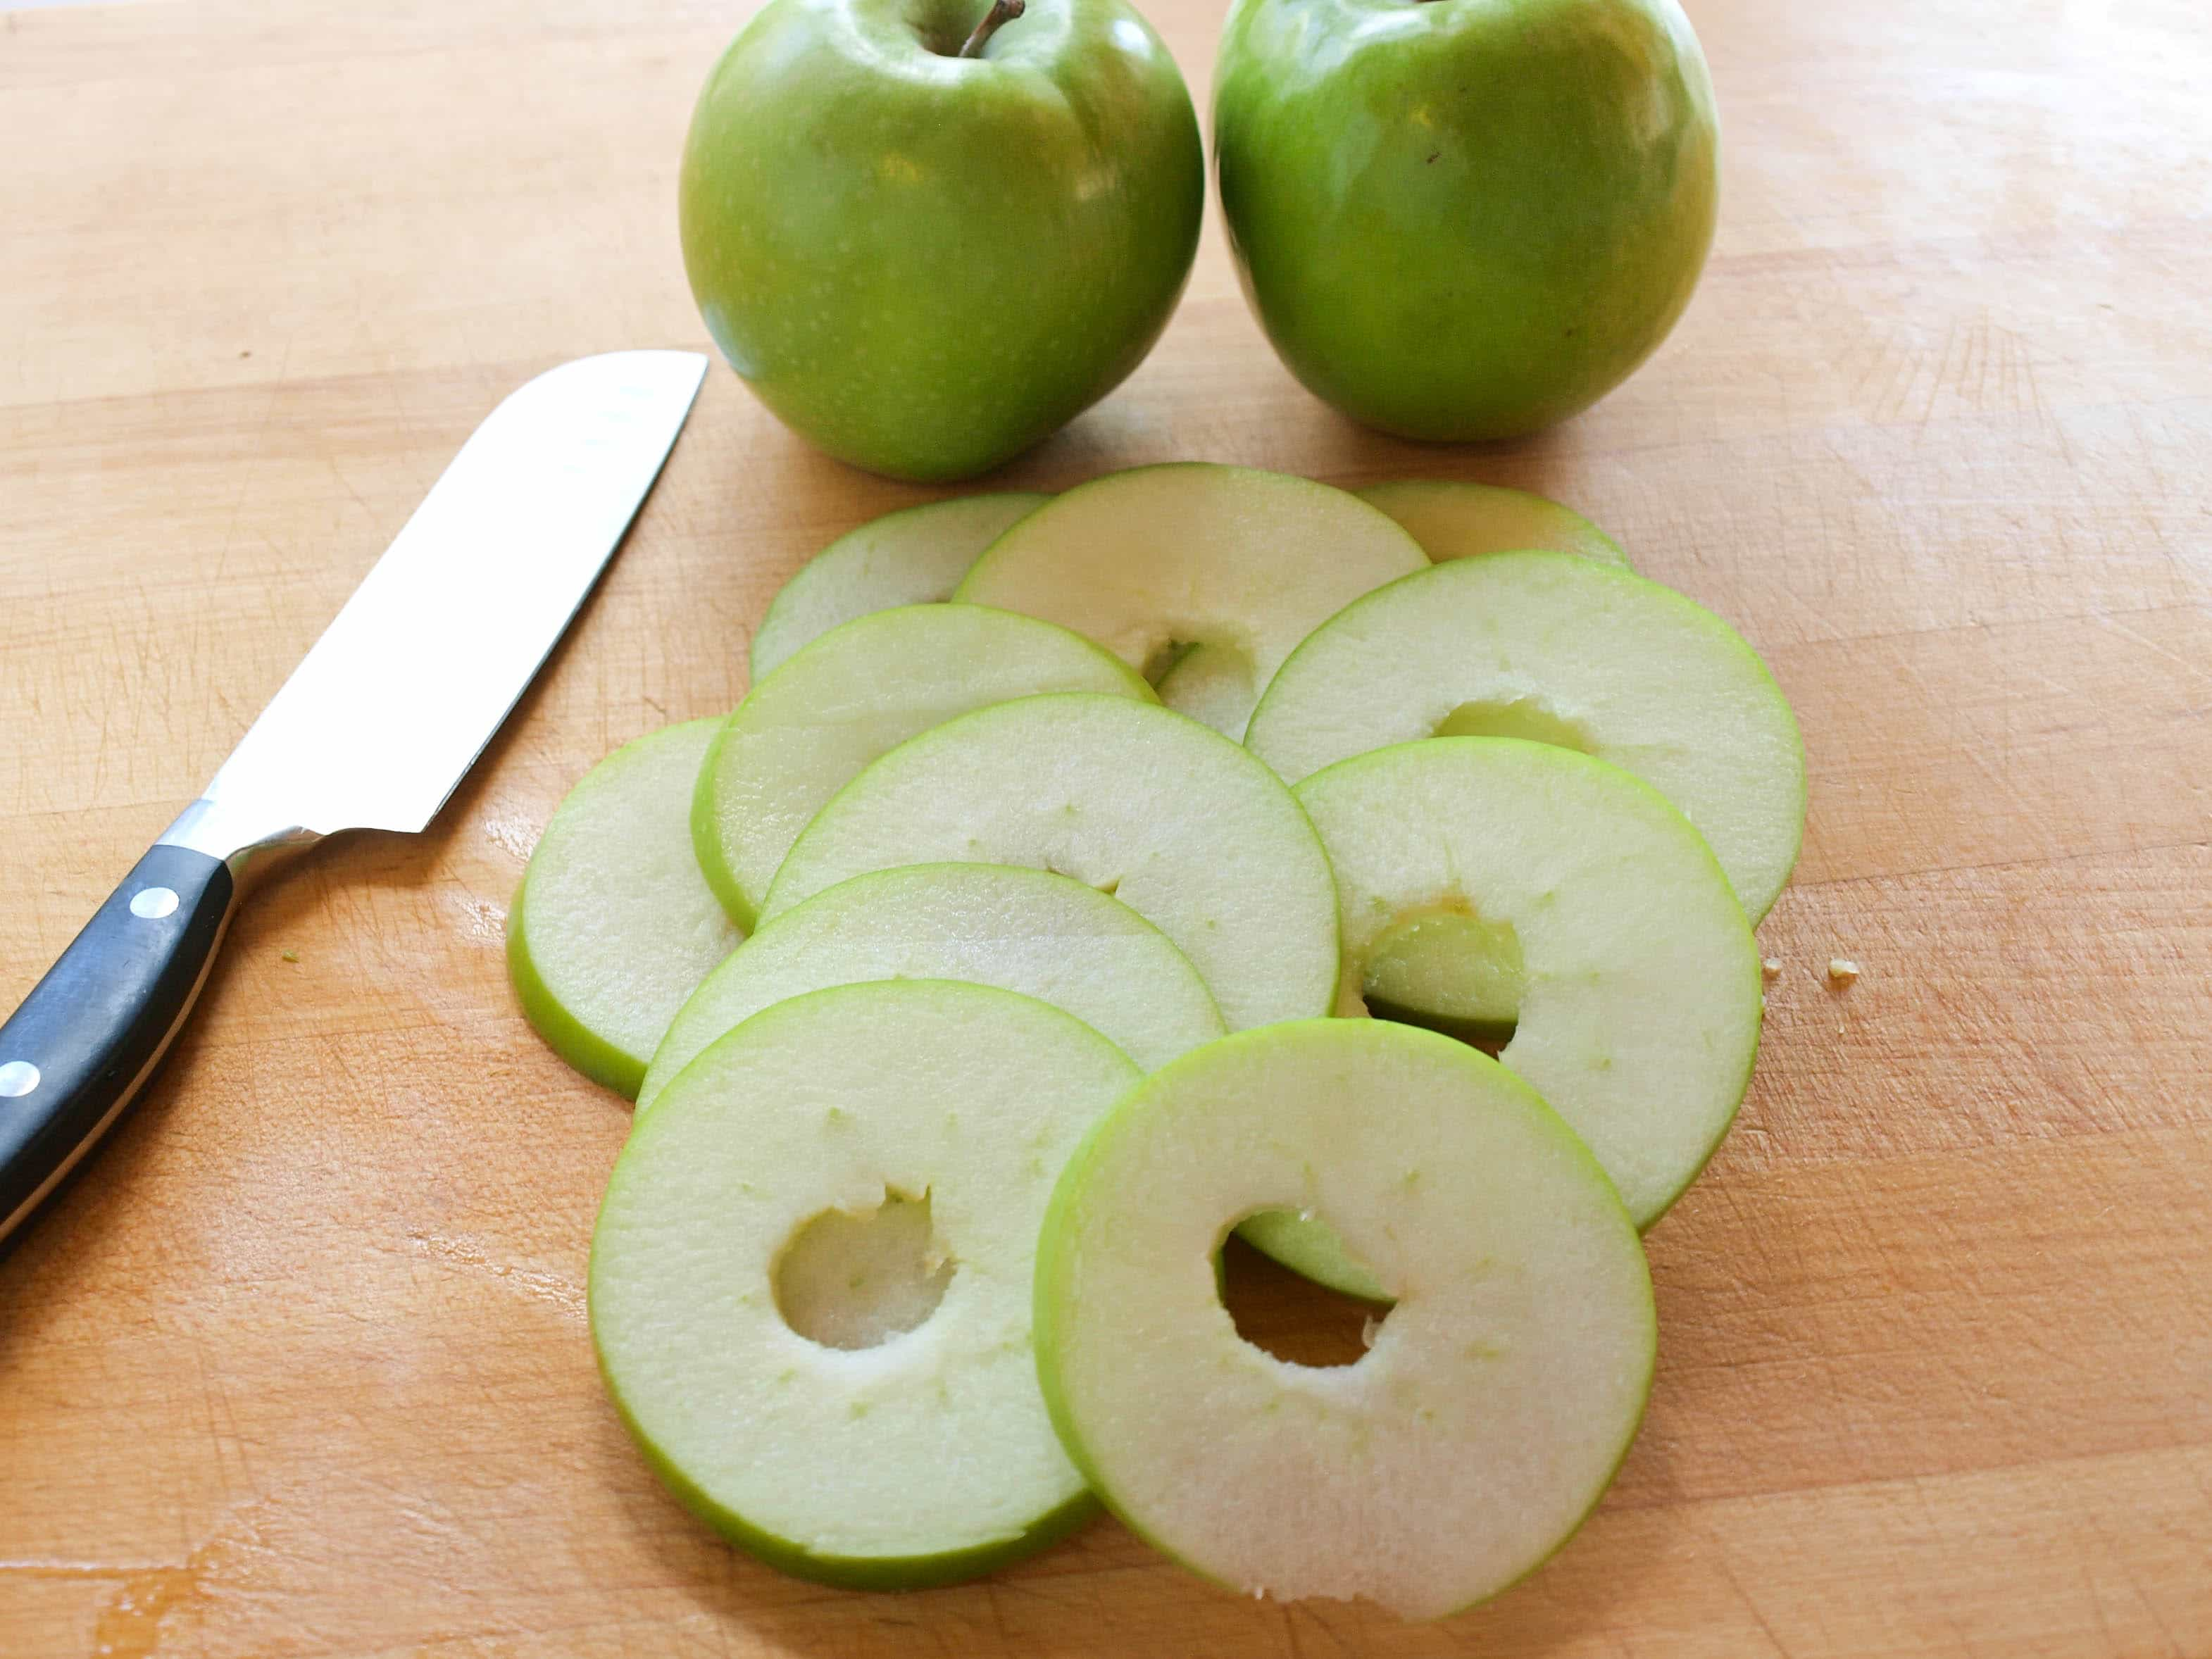 Slicing cored apples into rounds.